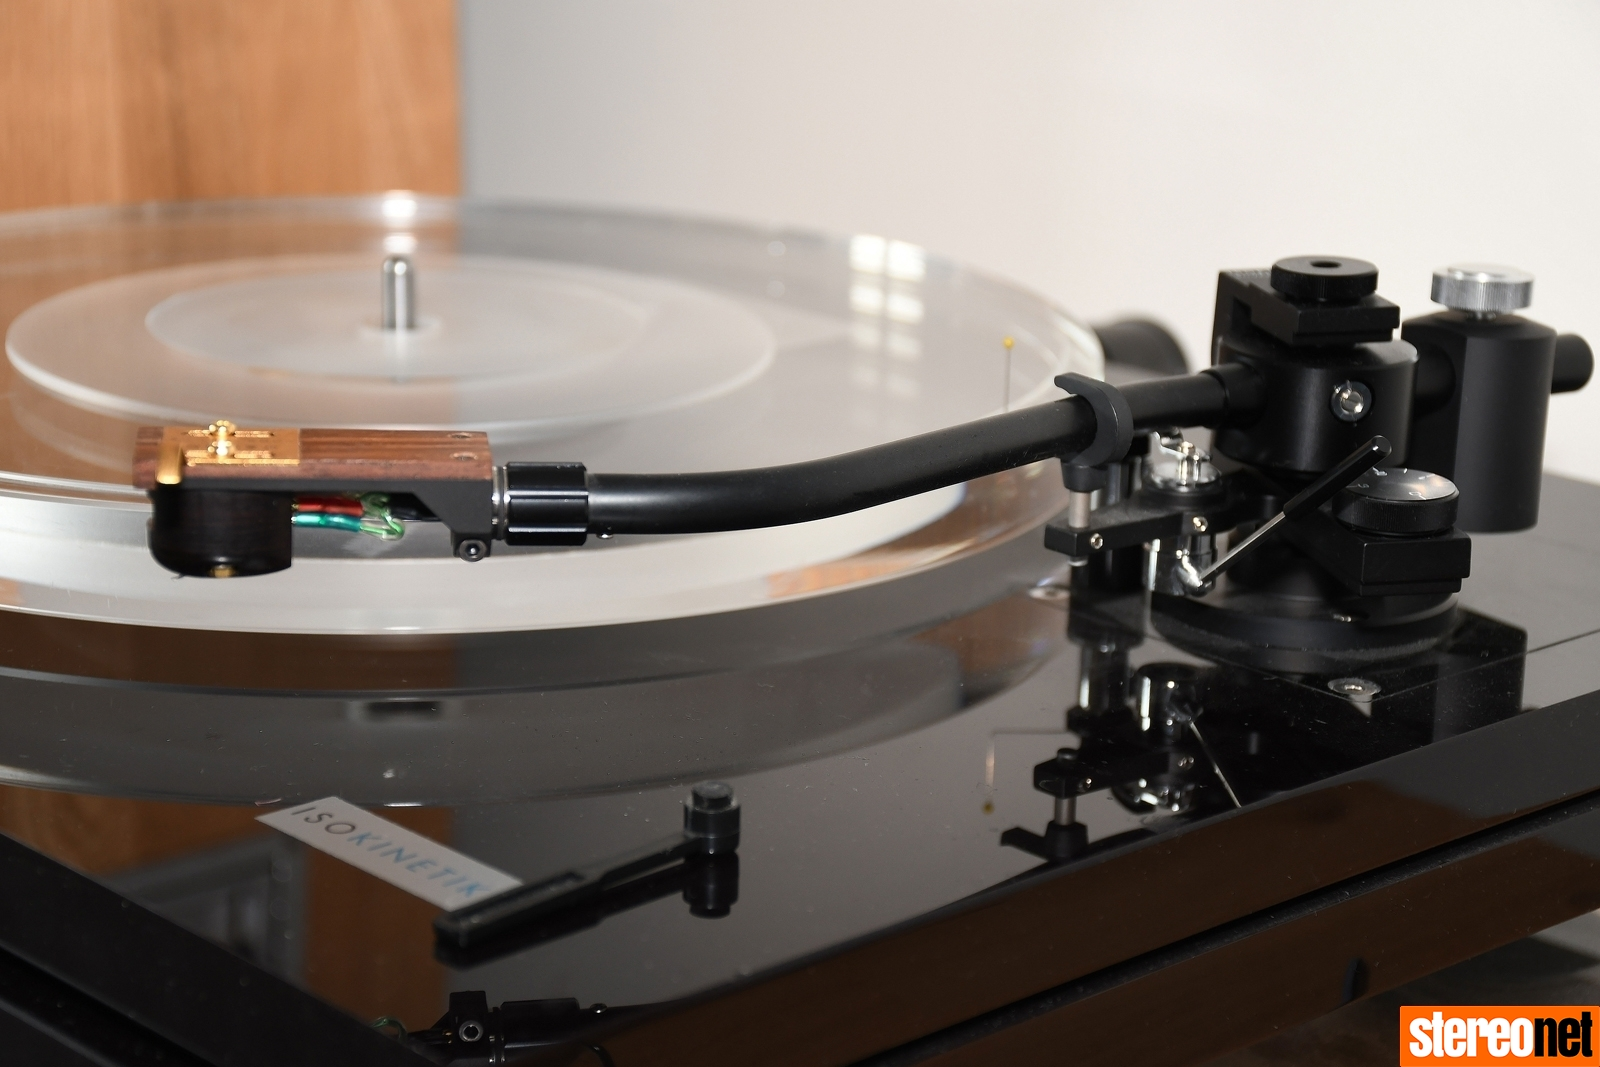 Setting up a turntable